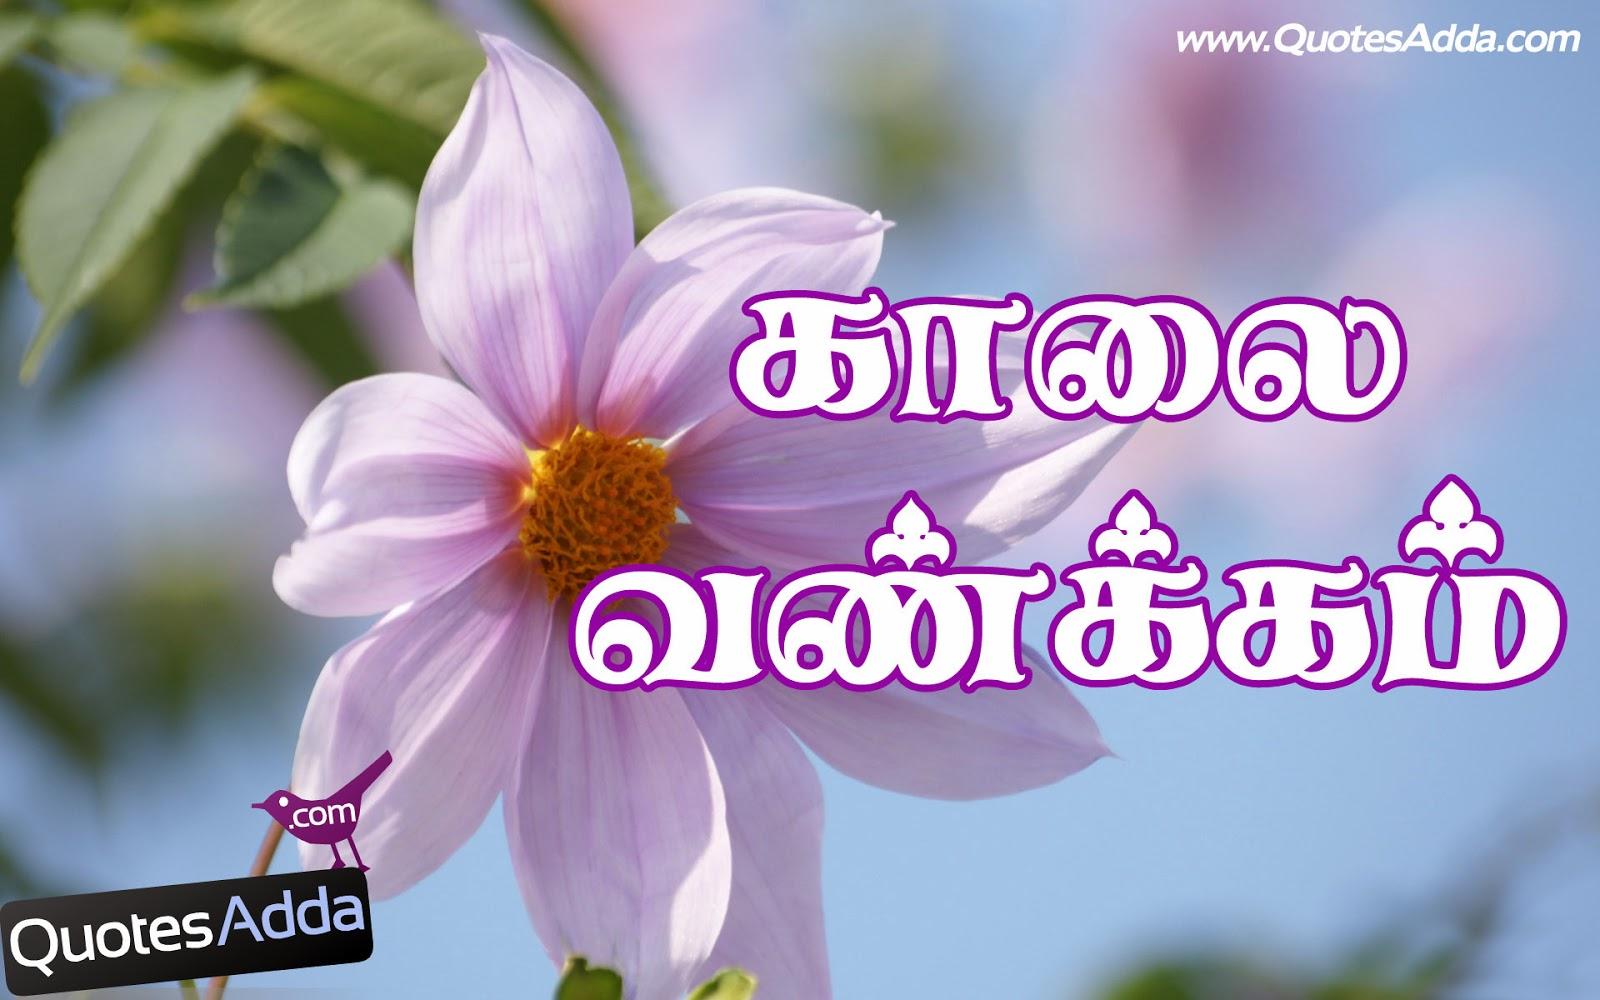 Good Morning Quotes Wallpapers in Tamil | Tamil Good Morning Kavithai